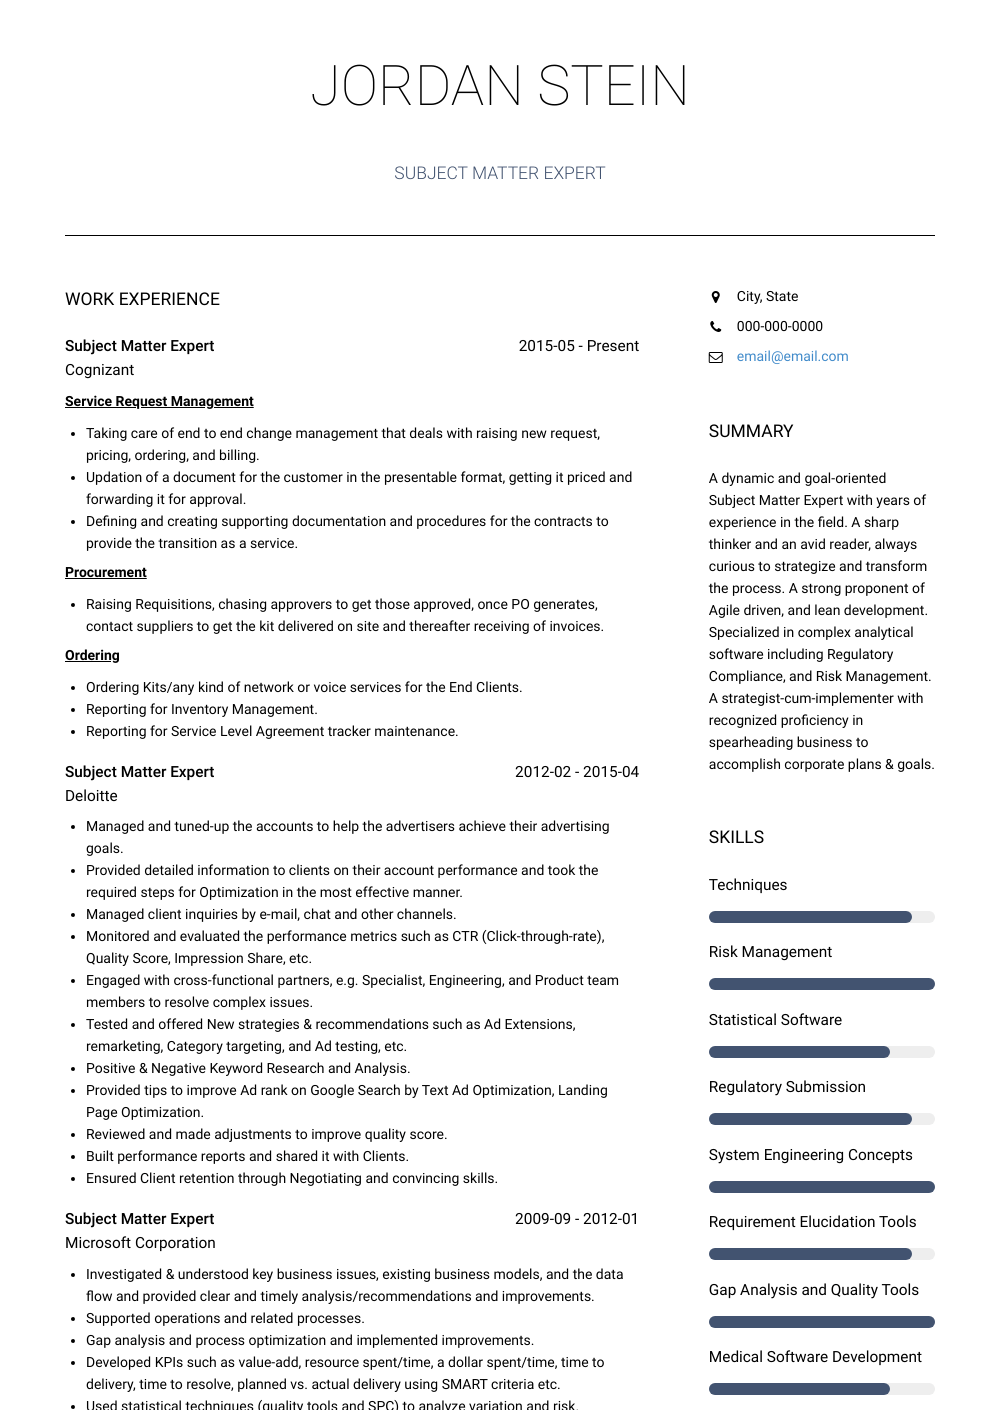 Subject Matter Expert Resume Sample